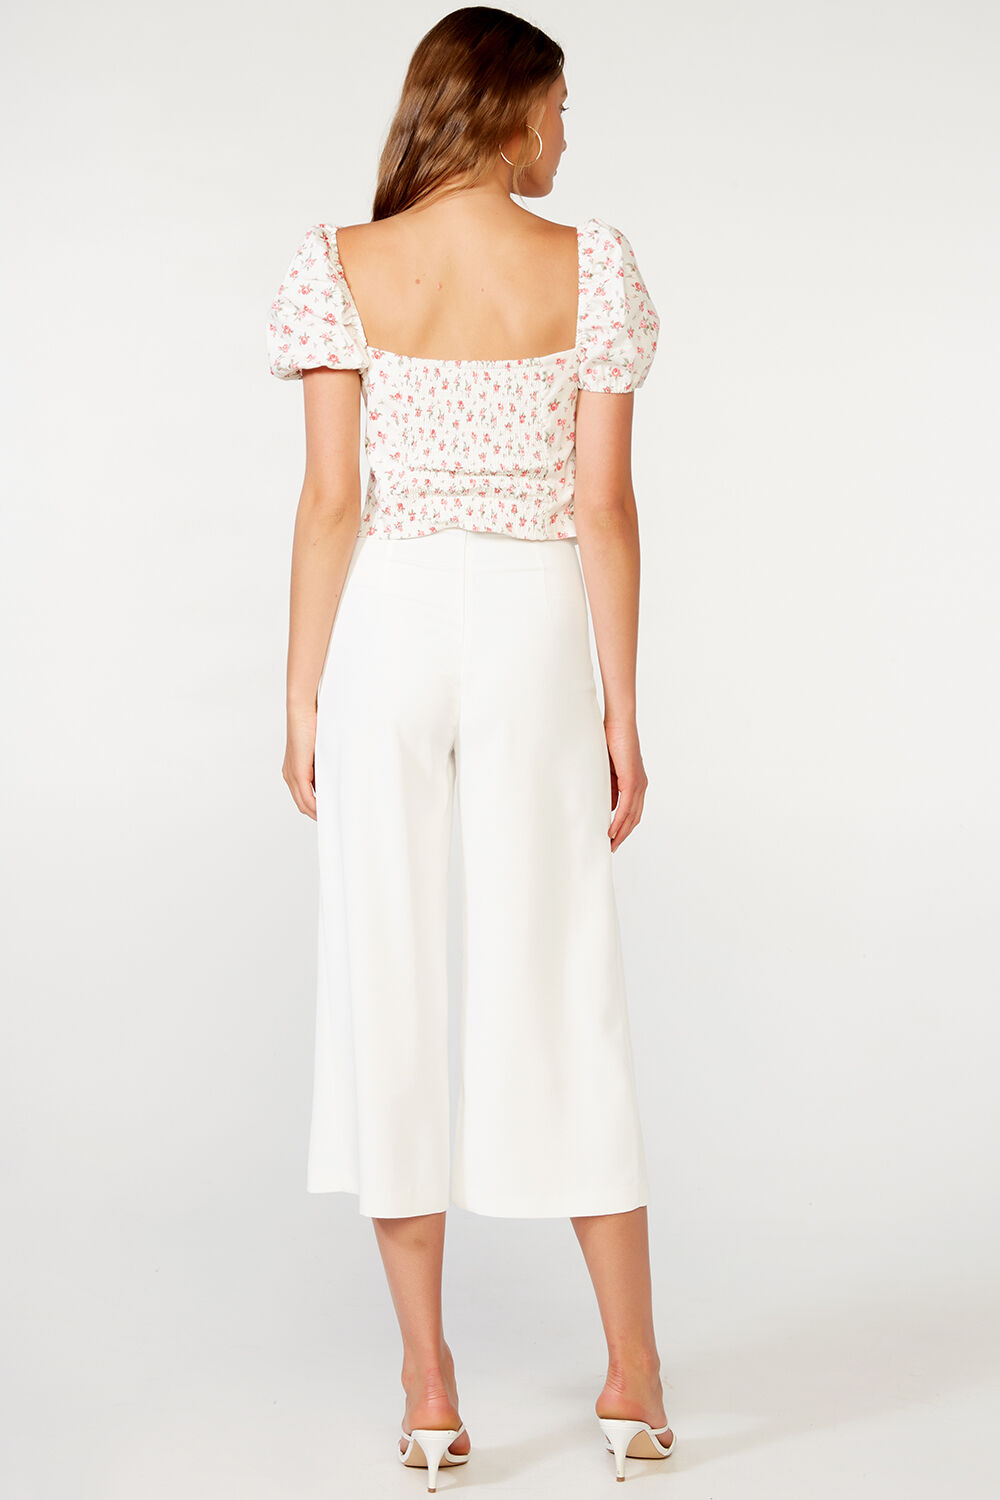 ROSA TOP in colour STAR WHITE